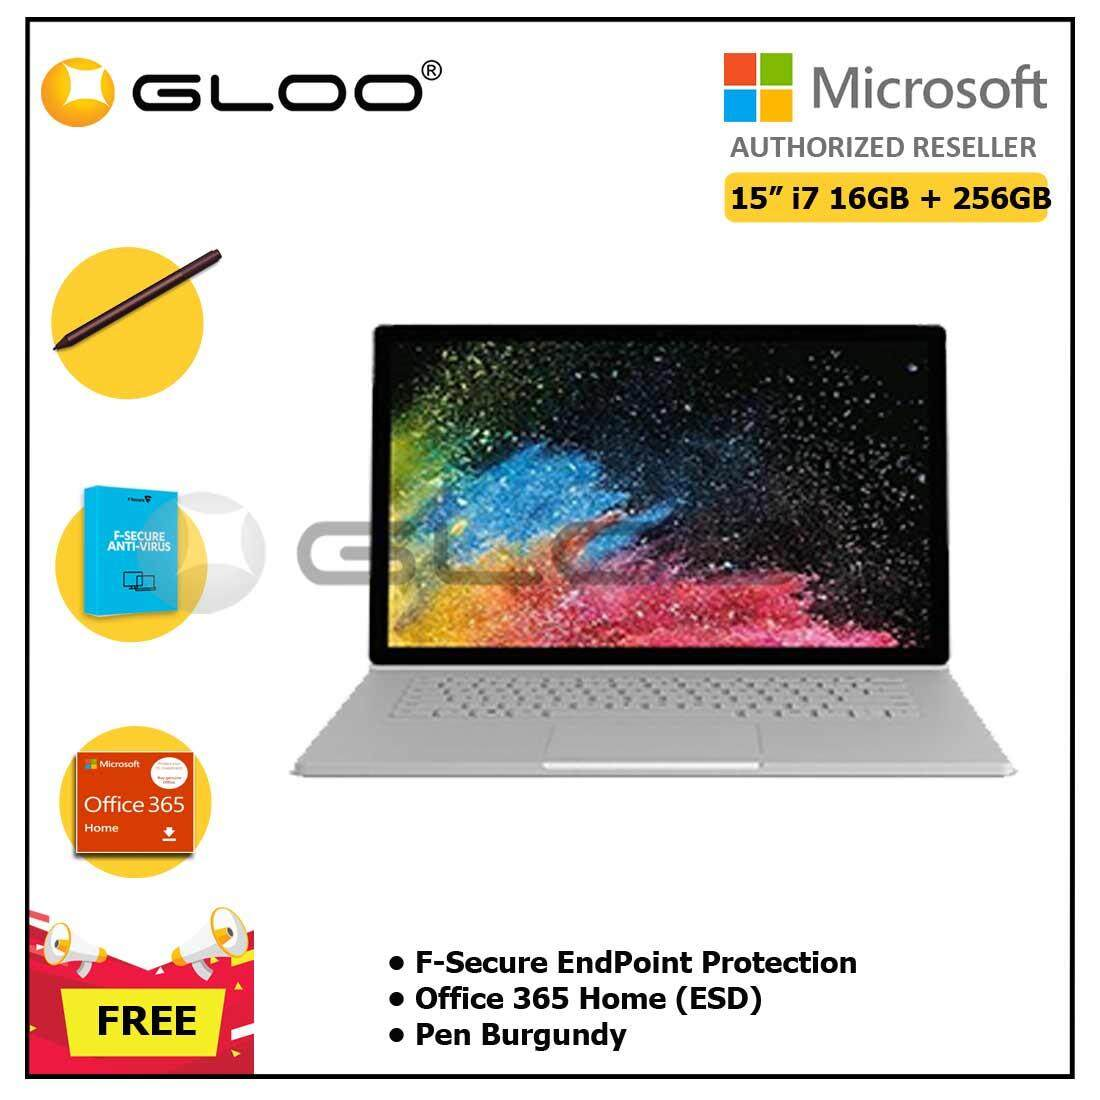 """Microsoft Surface Book 2 15"""" i7/16GB 256GB + F-Secure EndPoint Protection + Office 365 Home ESD + Pen Burgundy"""